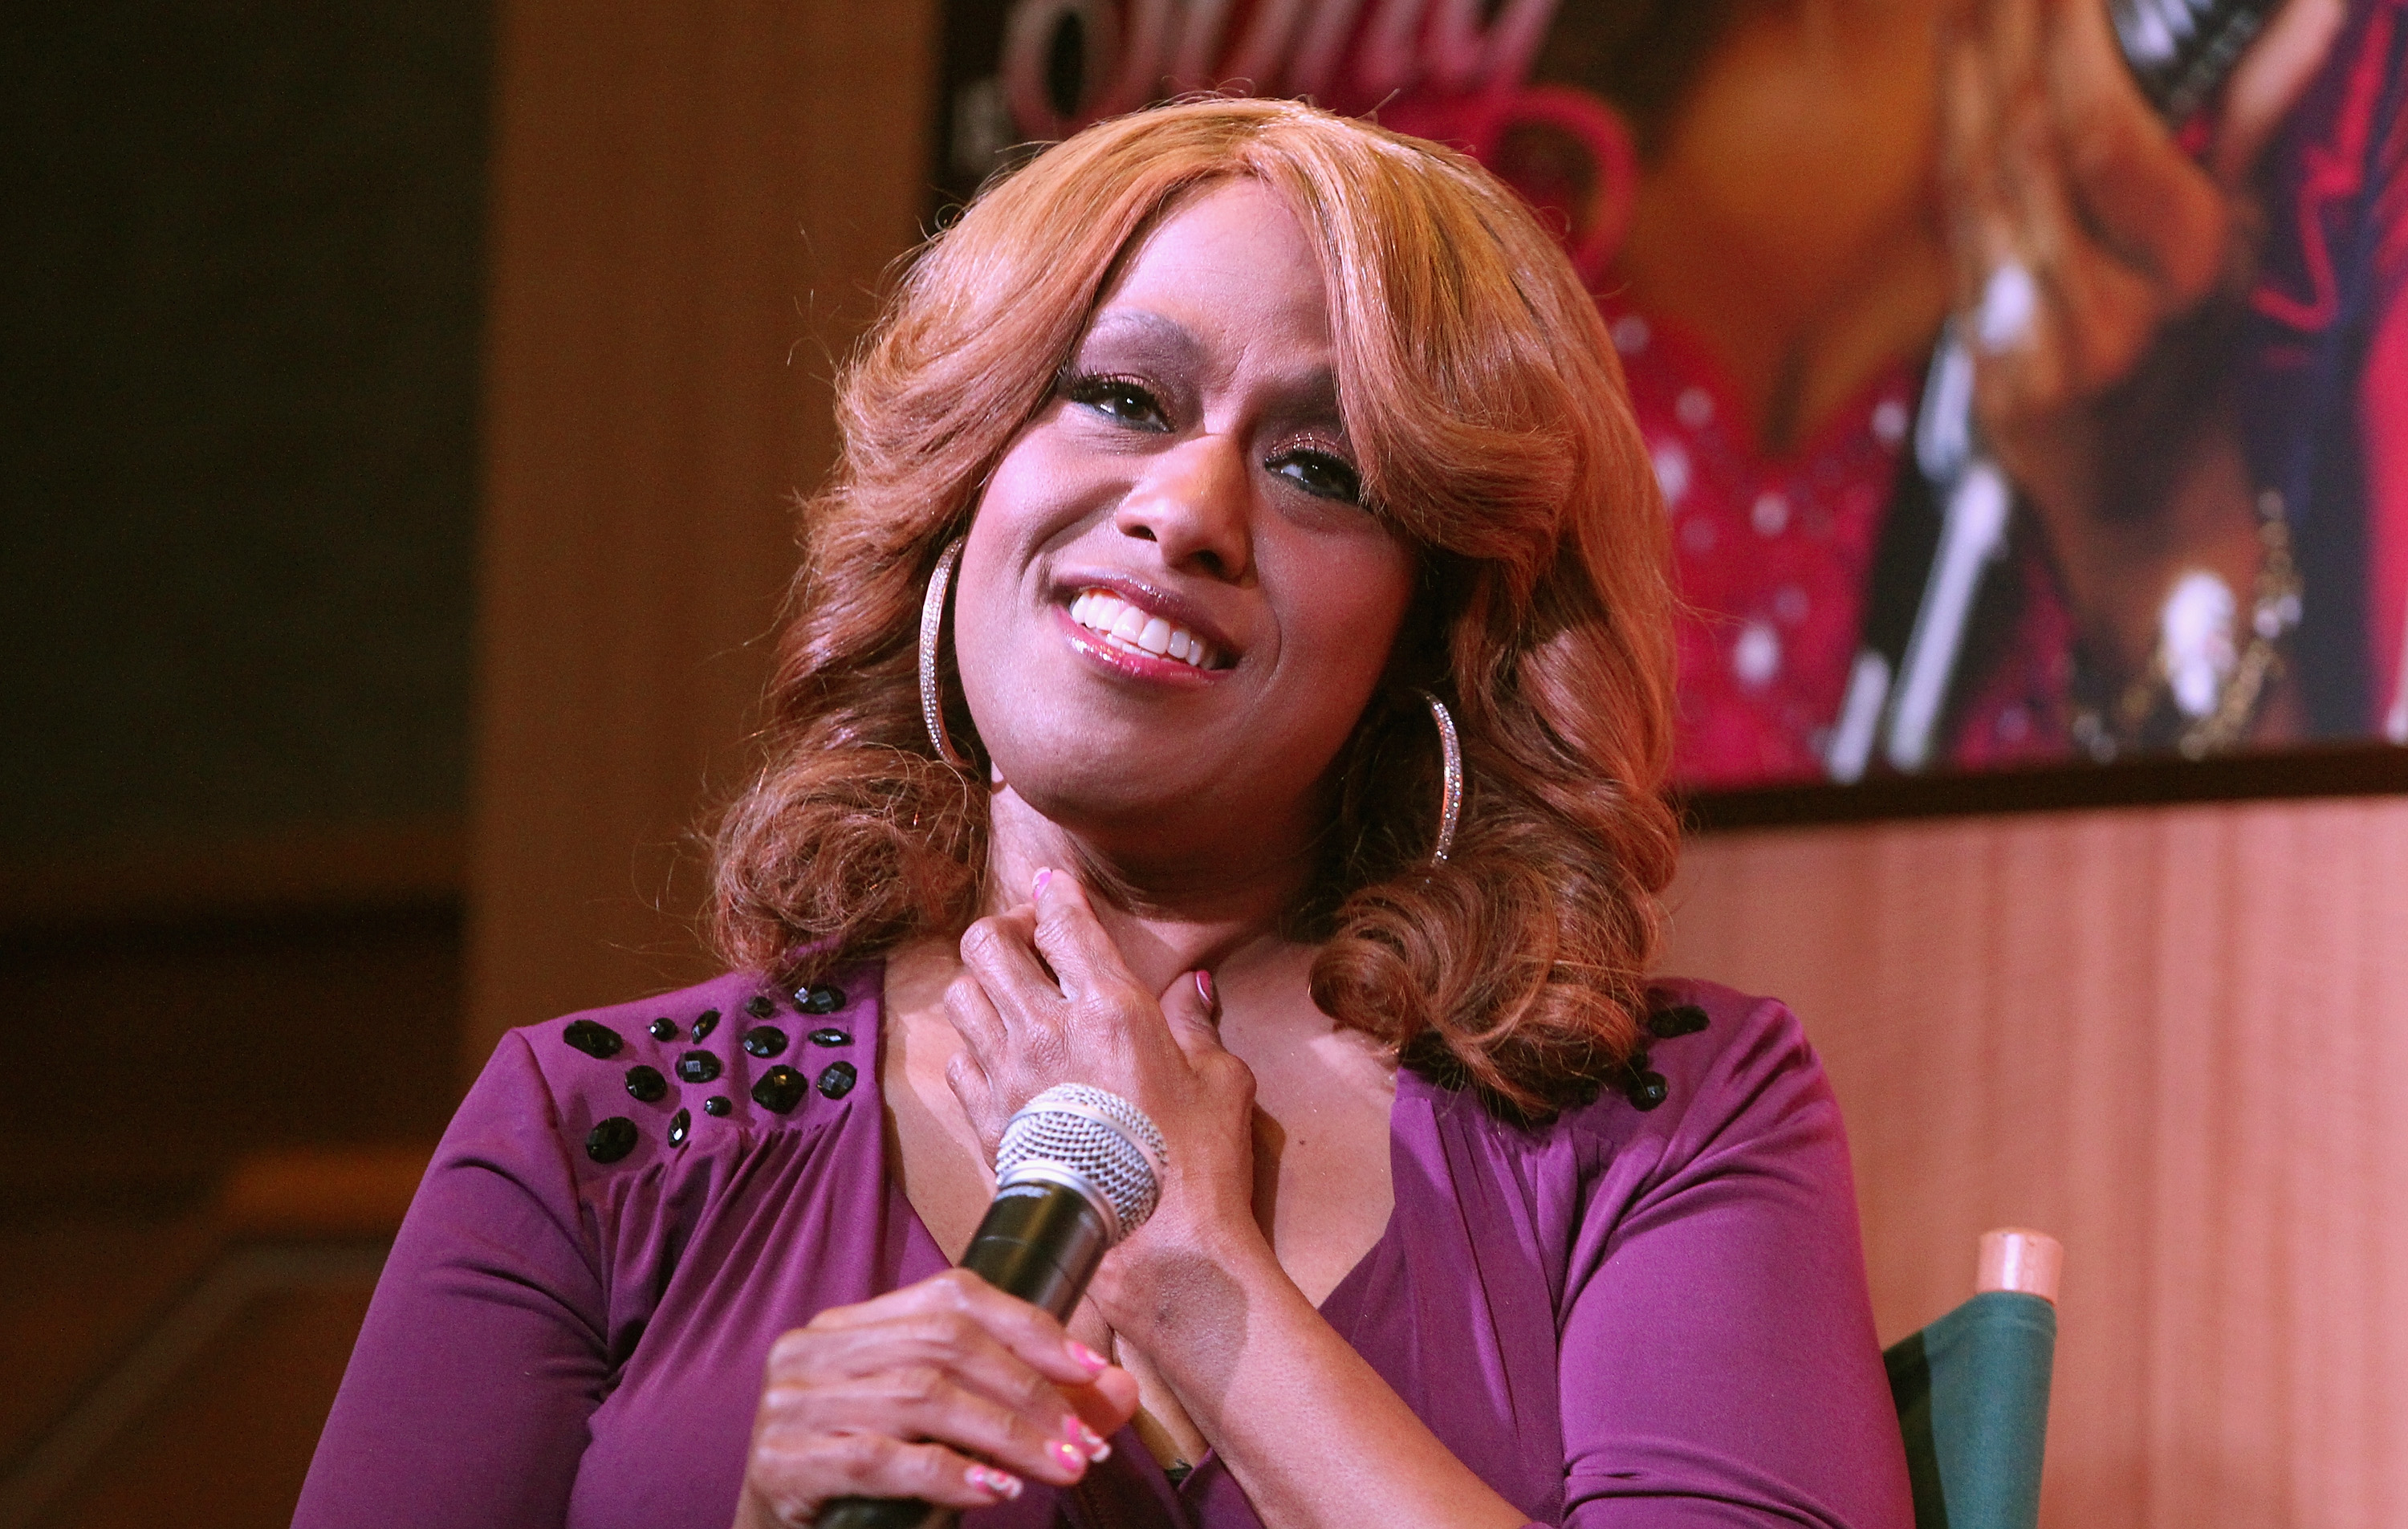 Jennifer Holliday performs in New York City, on Jan. 24, 2014.